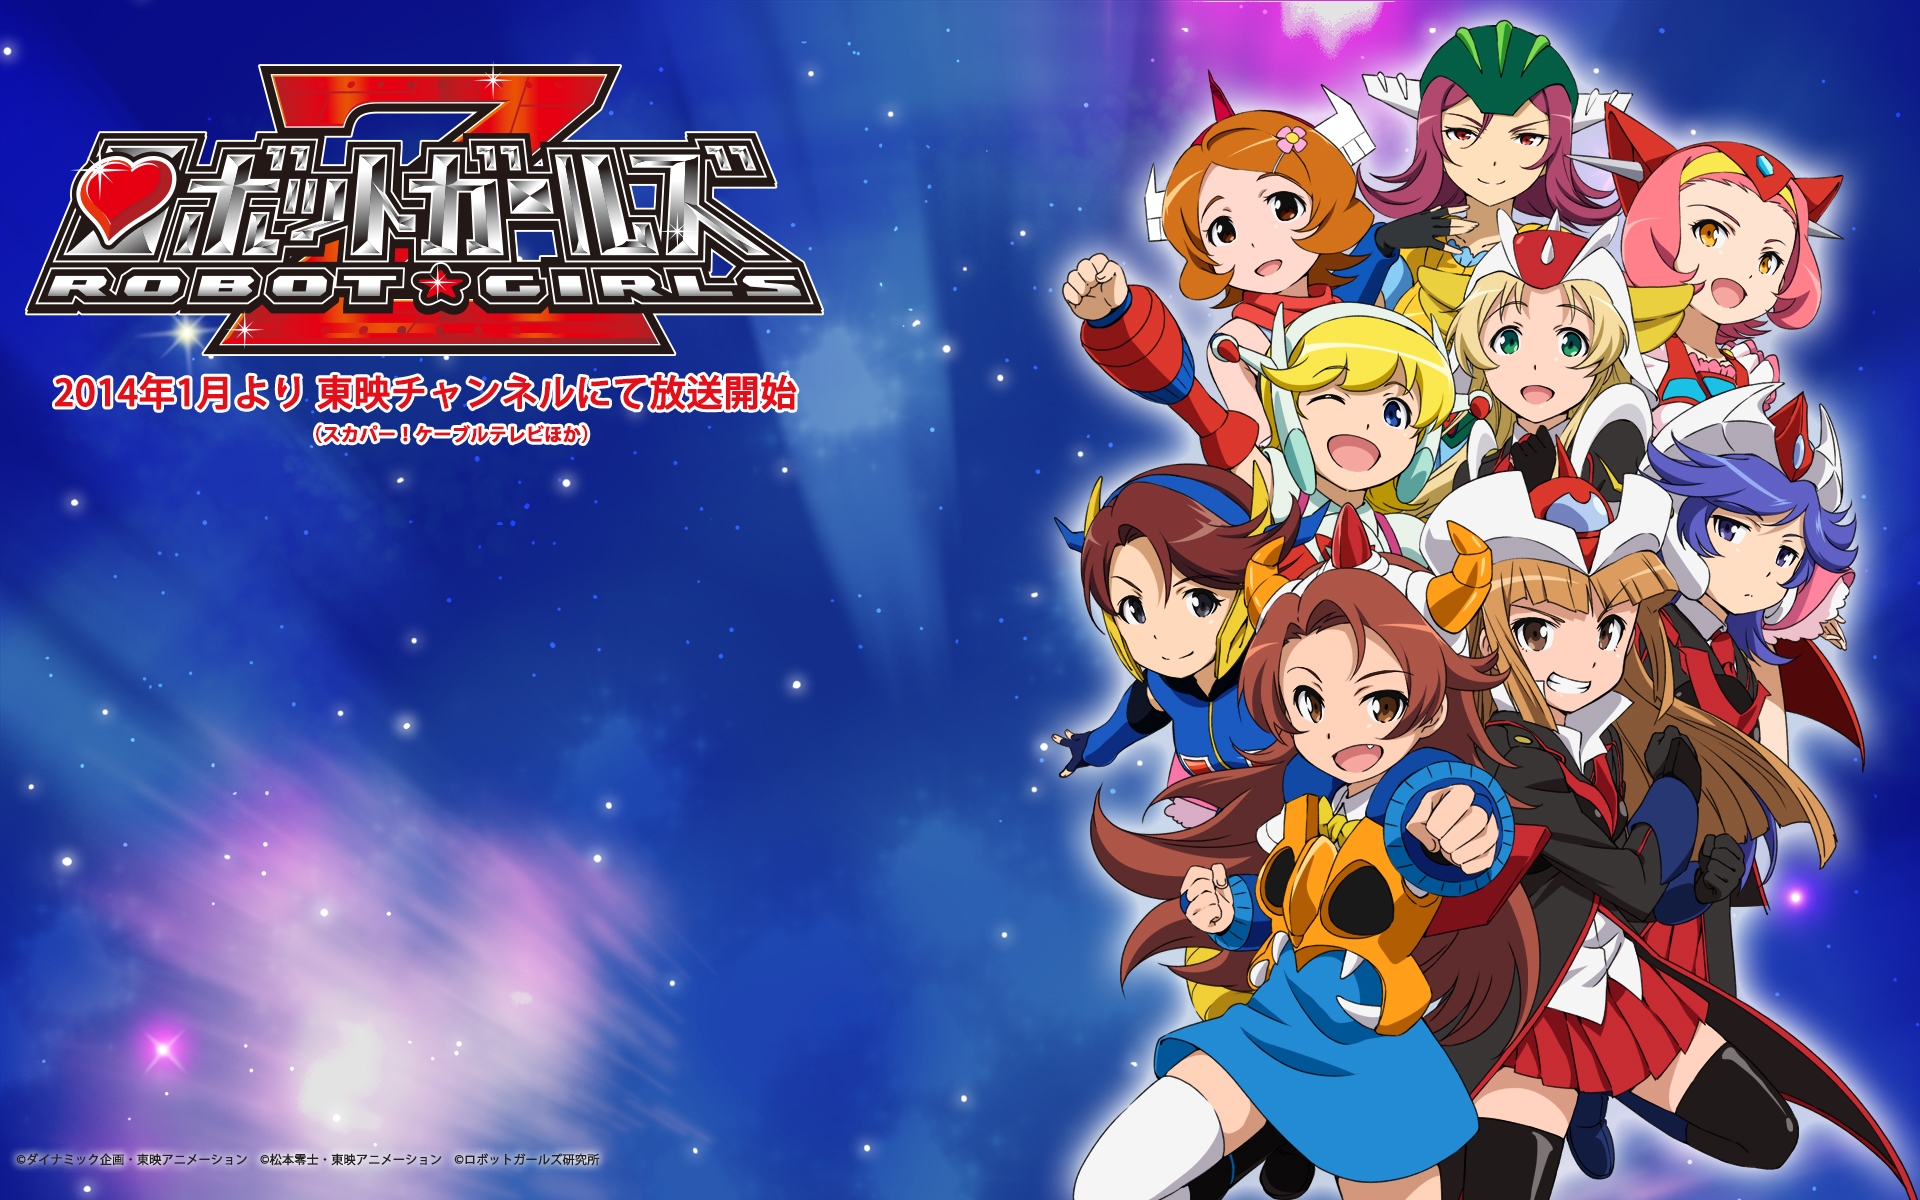 robot girls z - zerochan anime image board